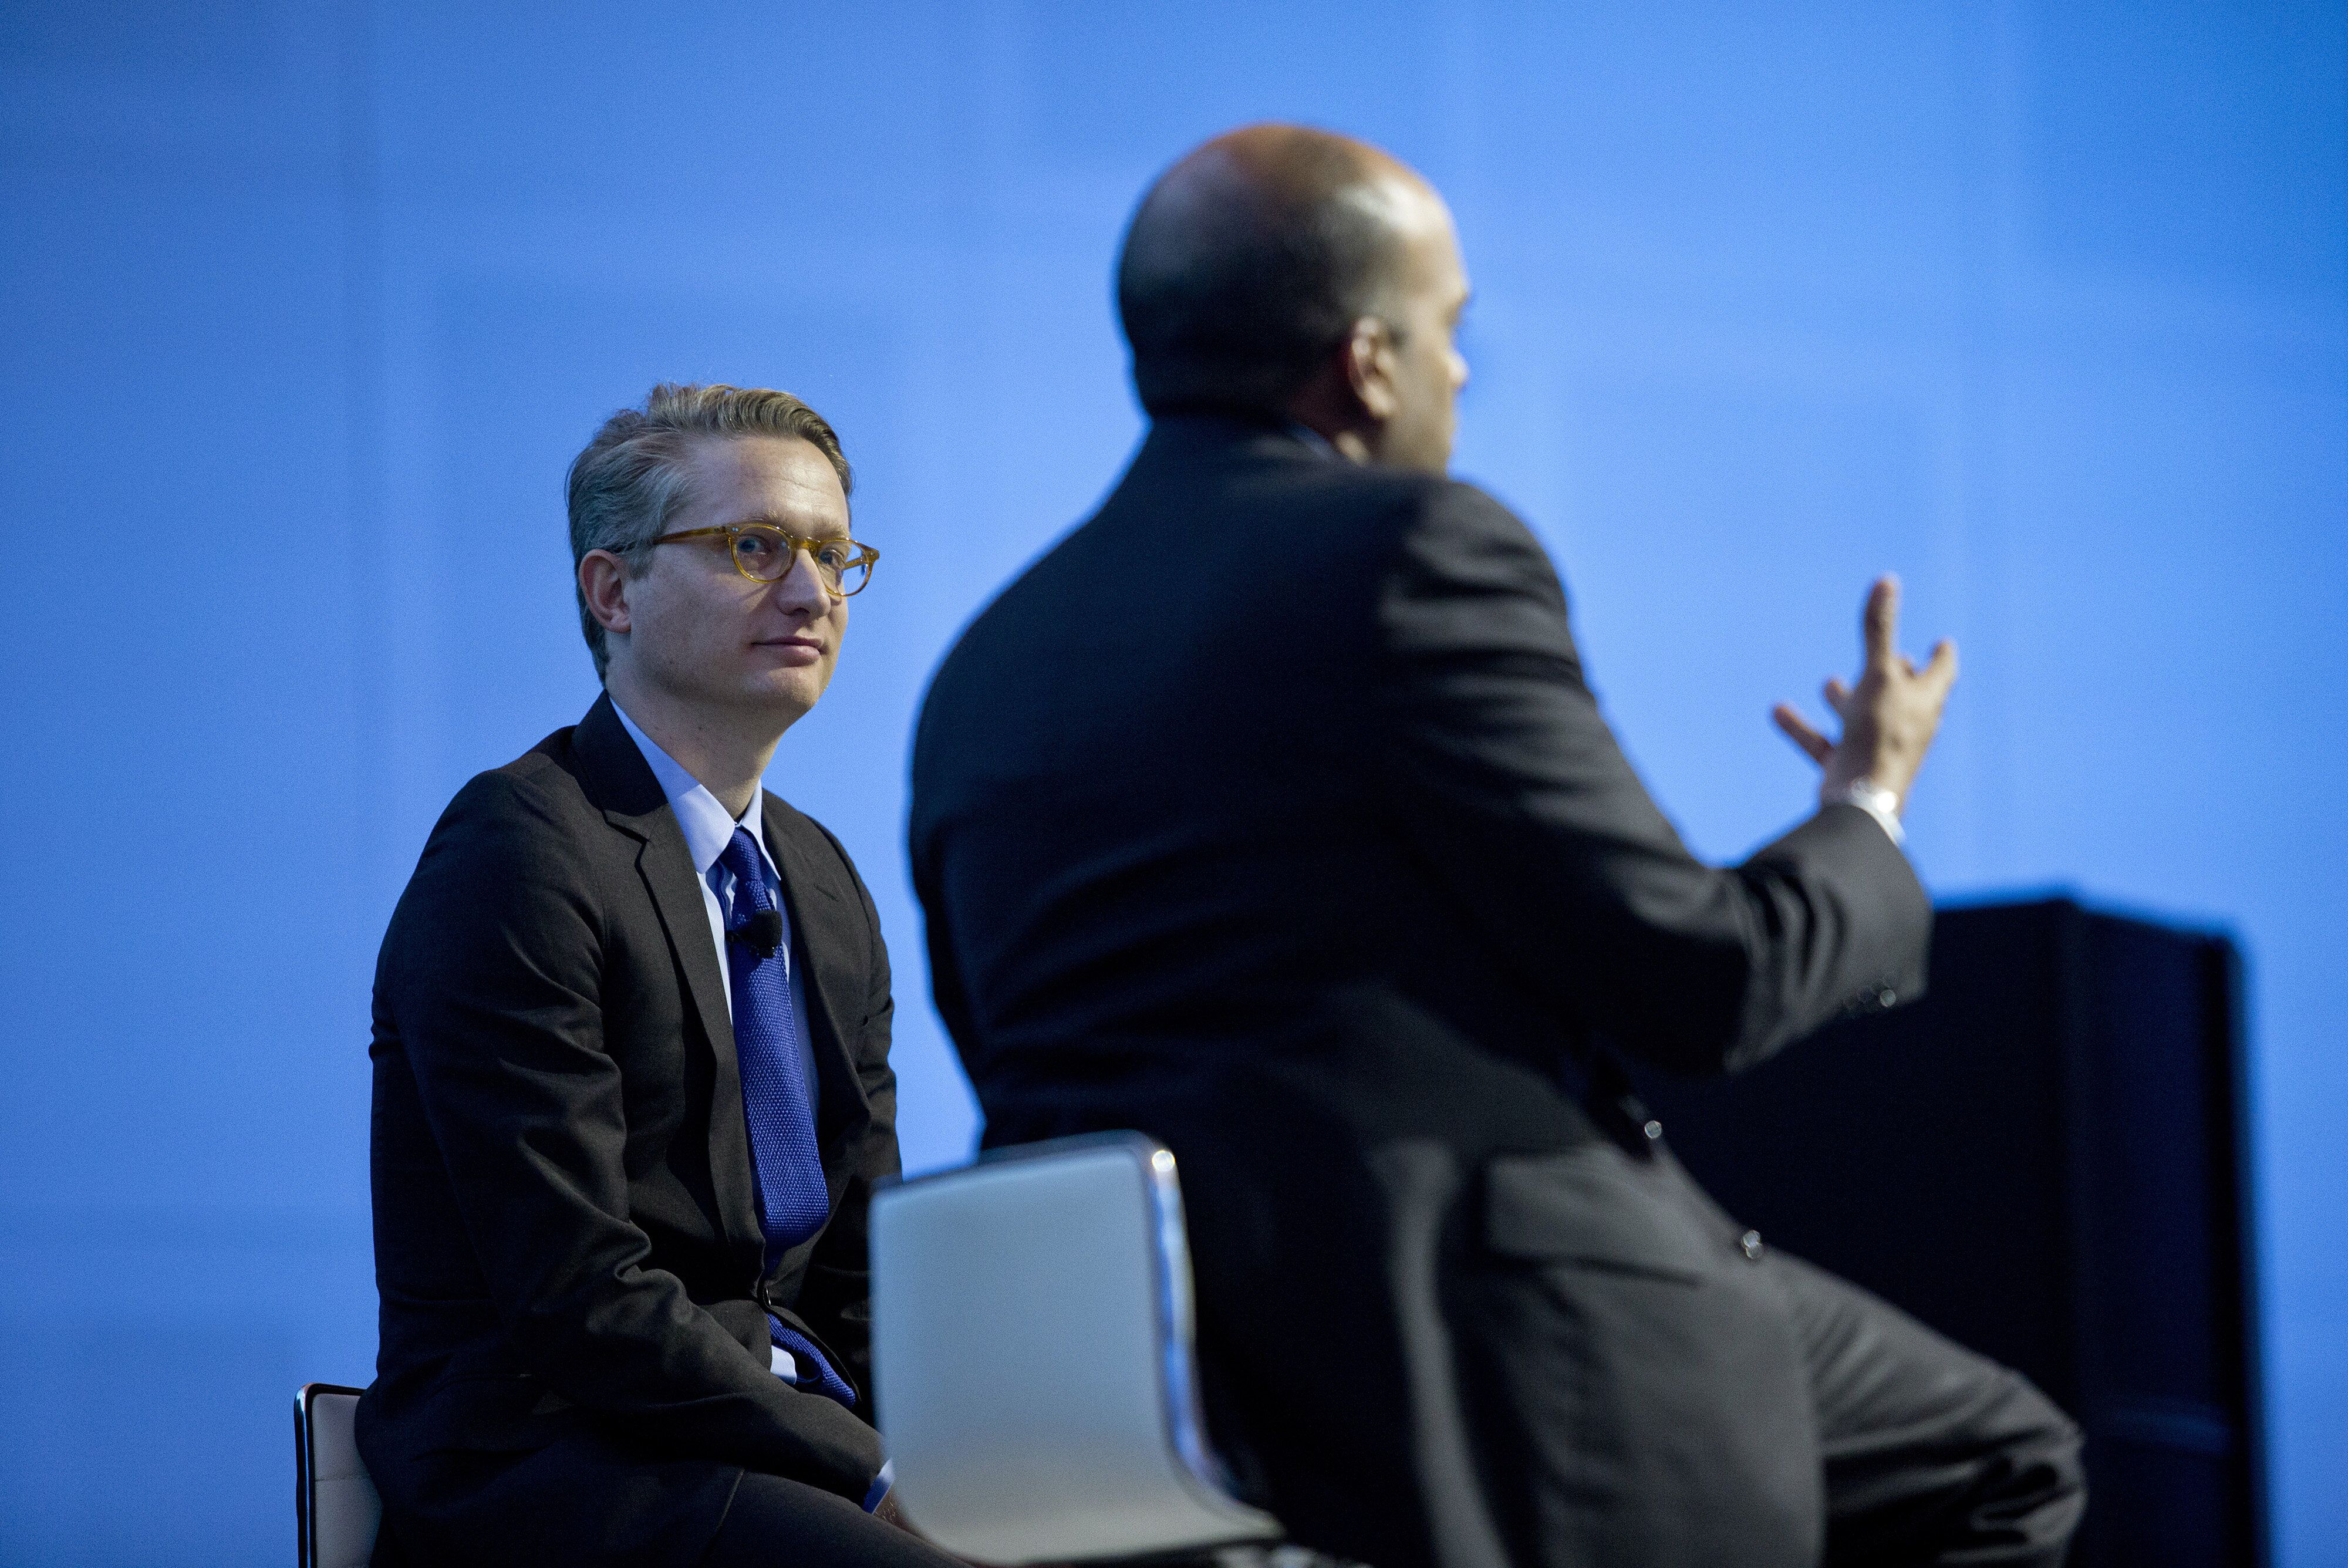 In this 2015 photo,Christian Madsbjerg of Red Associates (left) listens to Raj Nair, executive vice president and chief